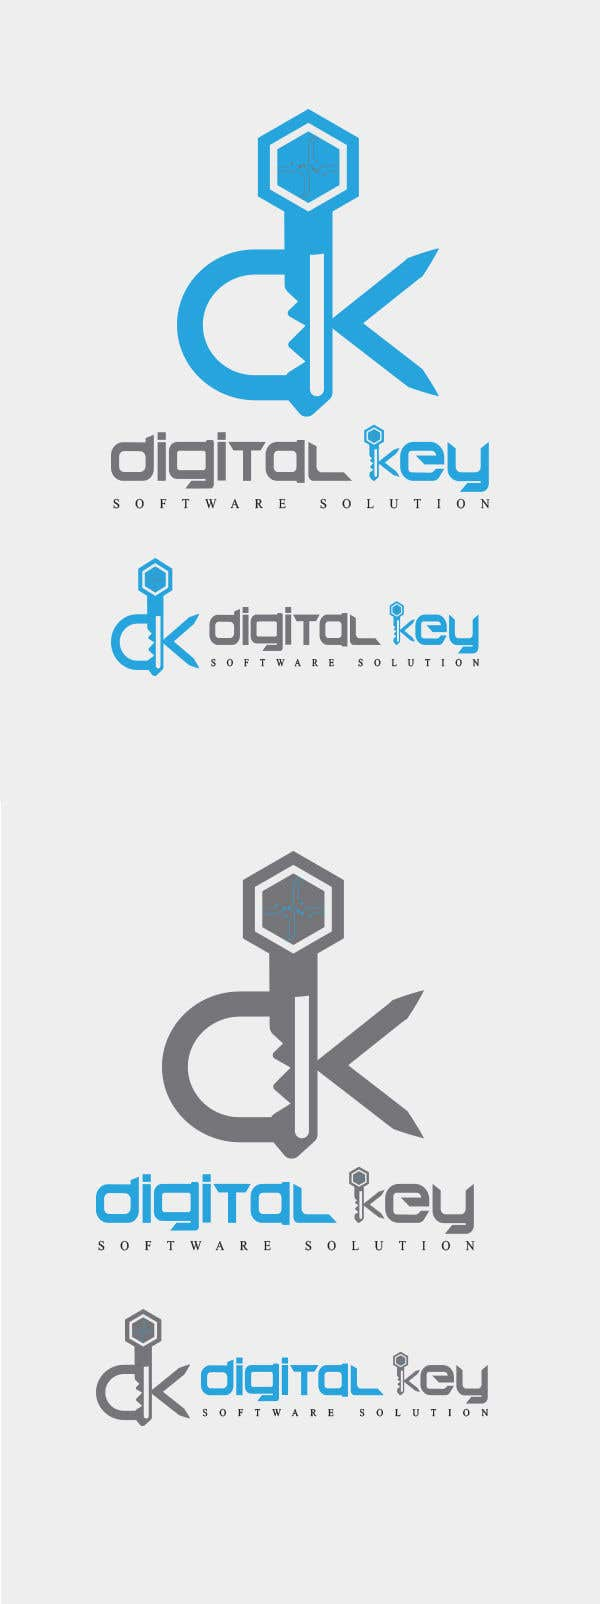 Konkurrenceindlæg #57 for Logo for firm name Digital Key